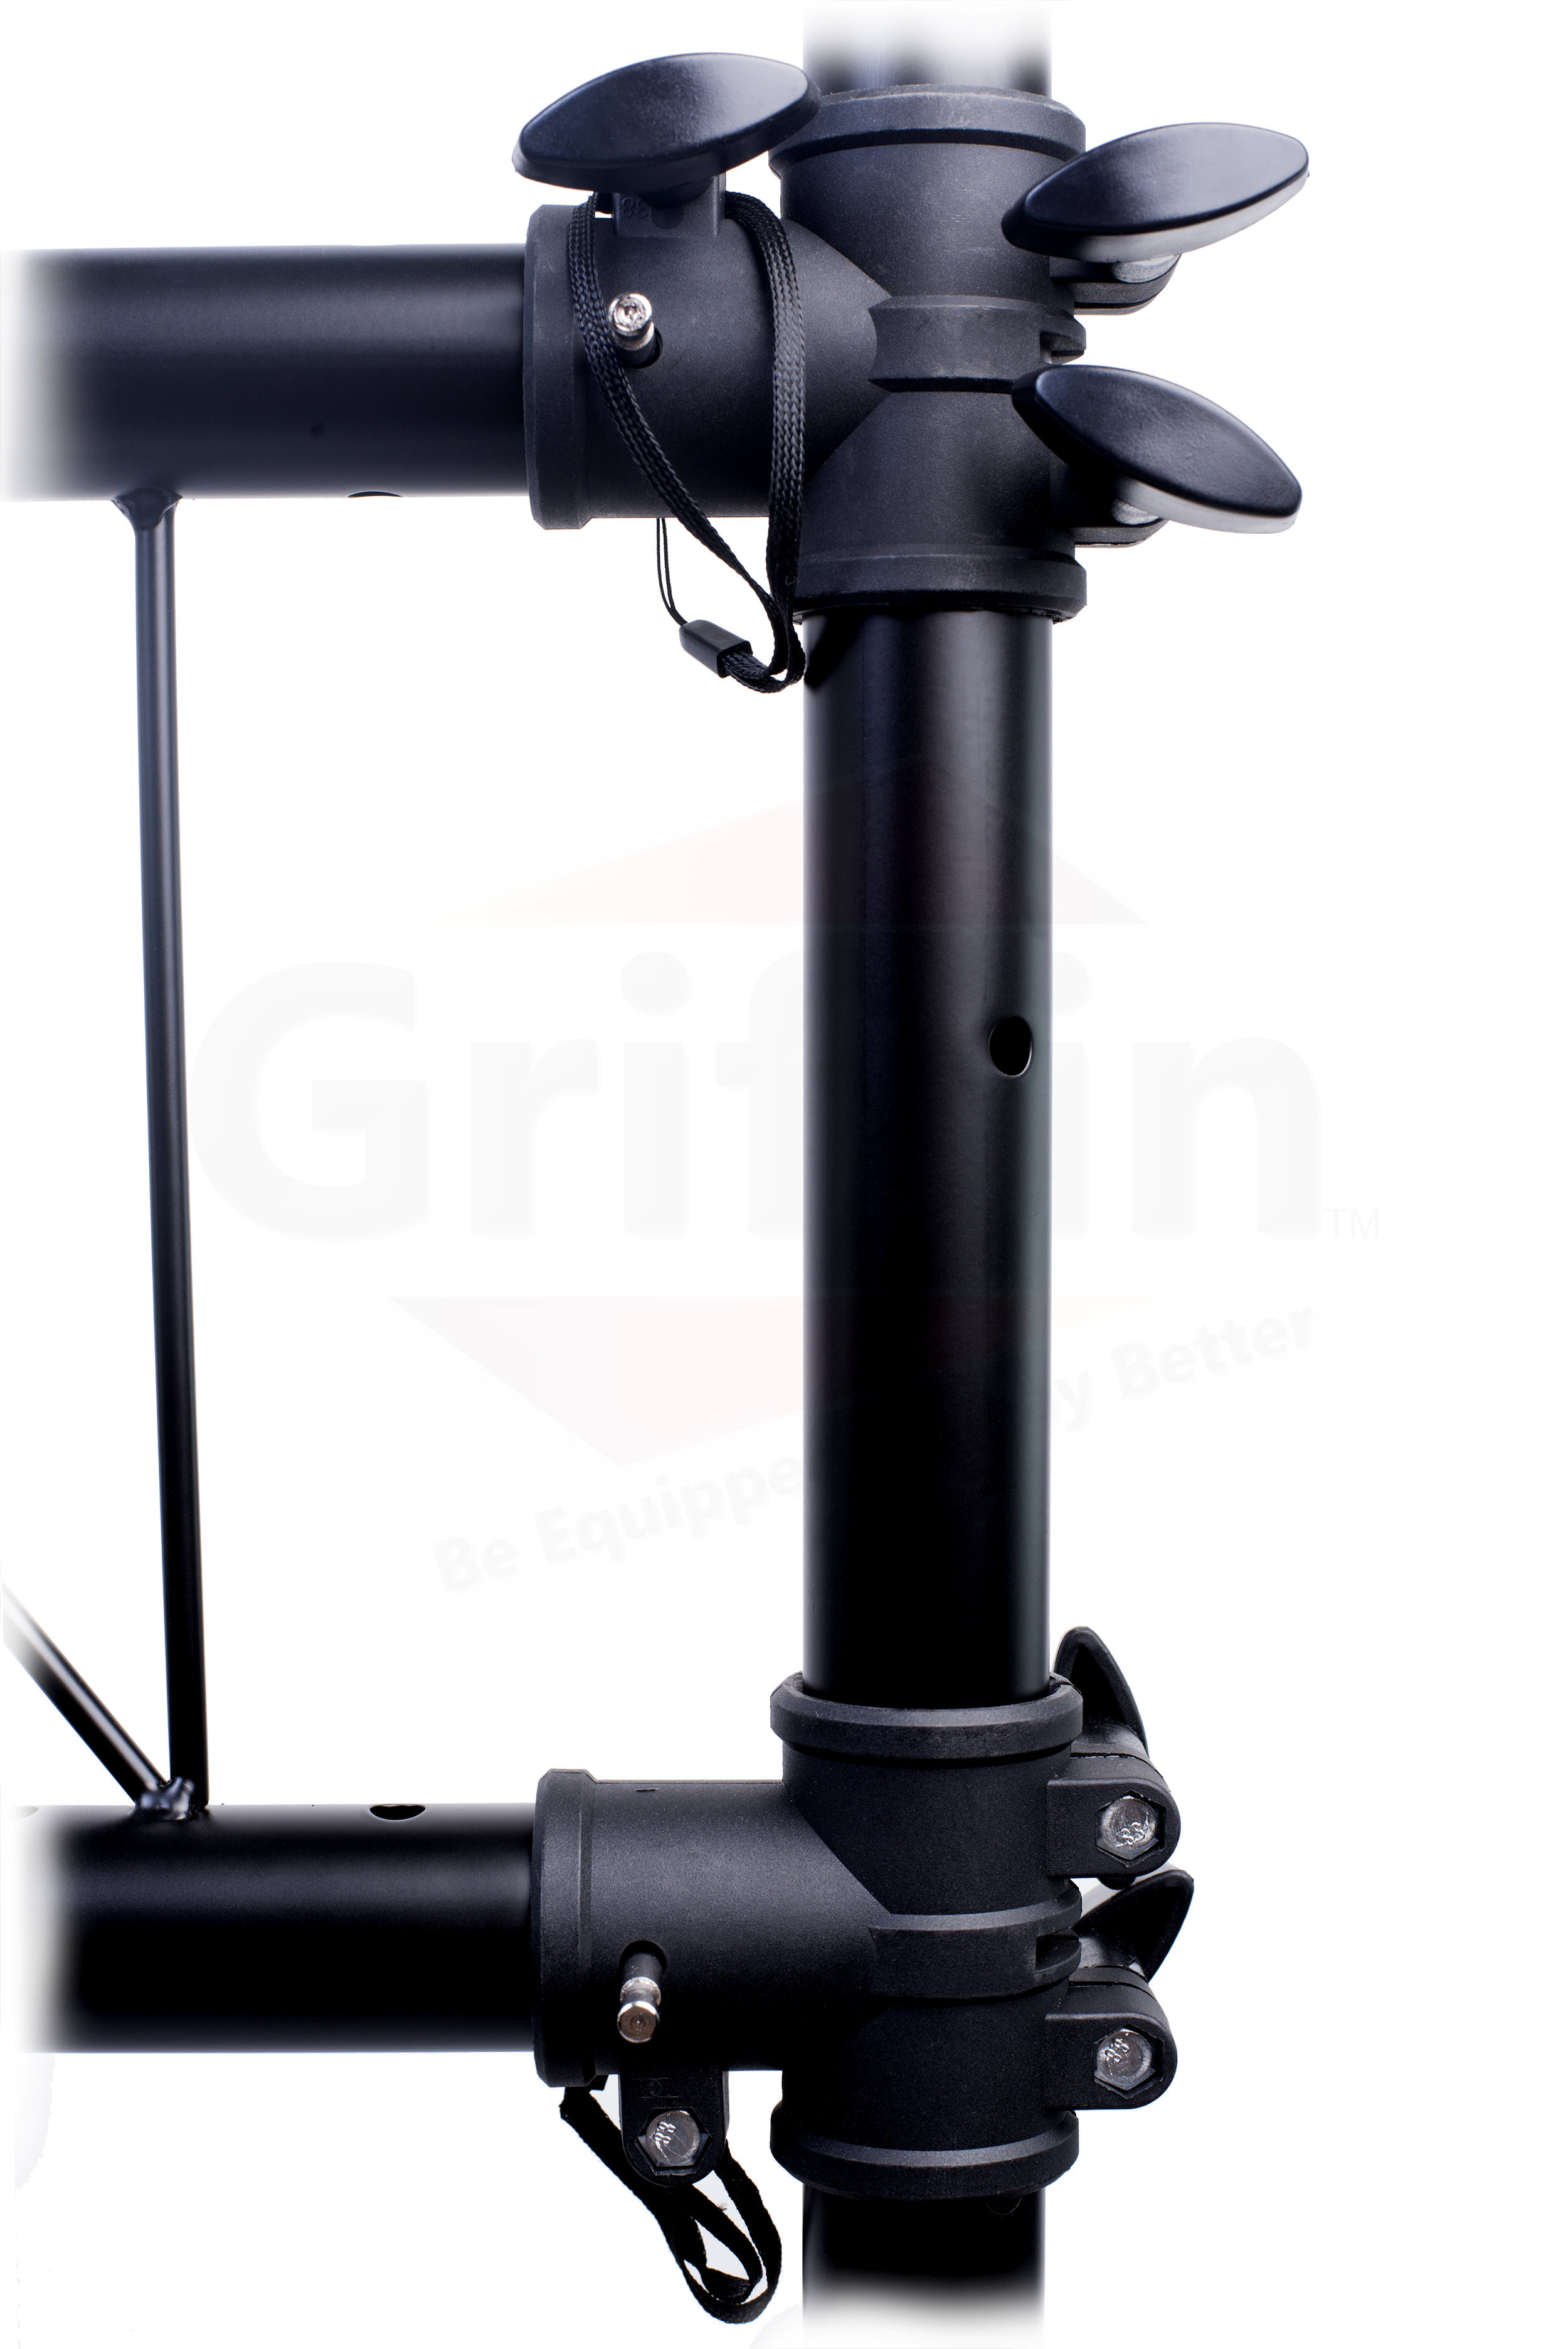 dj light truss stage stand lighting trussing speaker pa i beam t bar kit system ebay. Black Bedroom Furniture Sets. Home Design Ideas